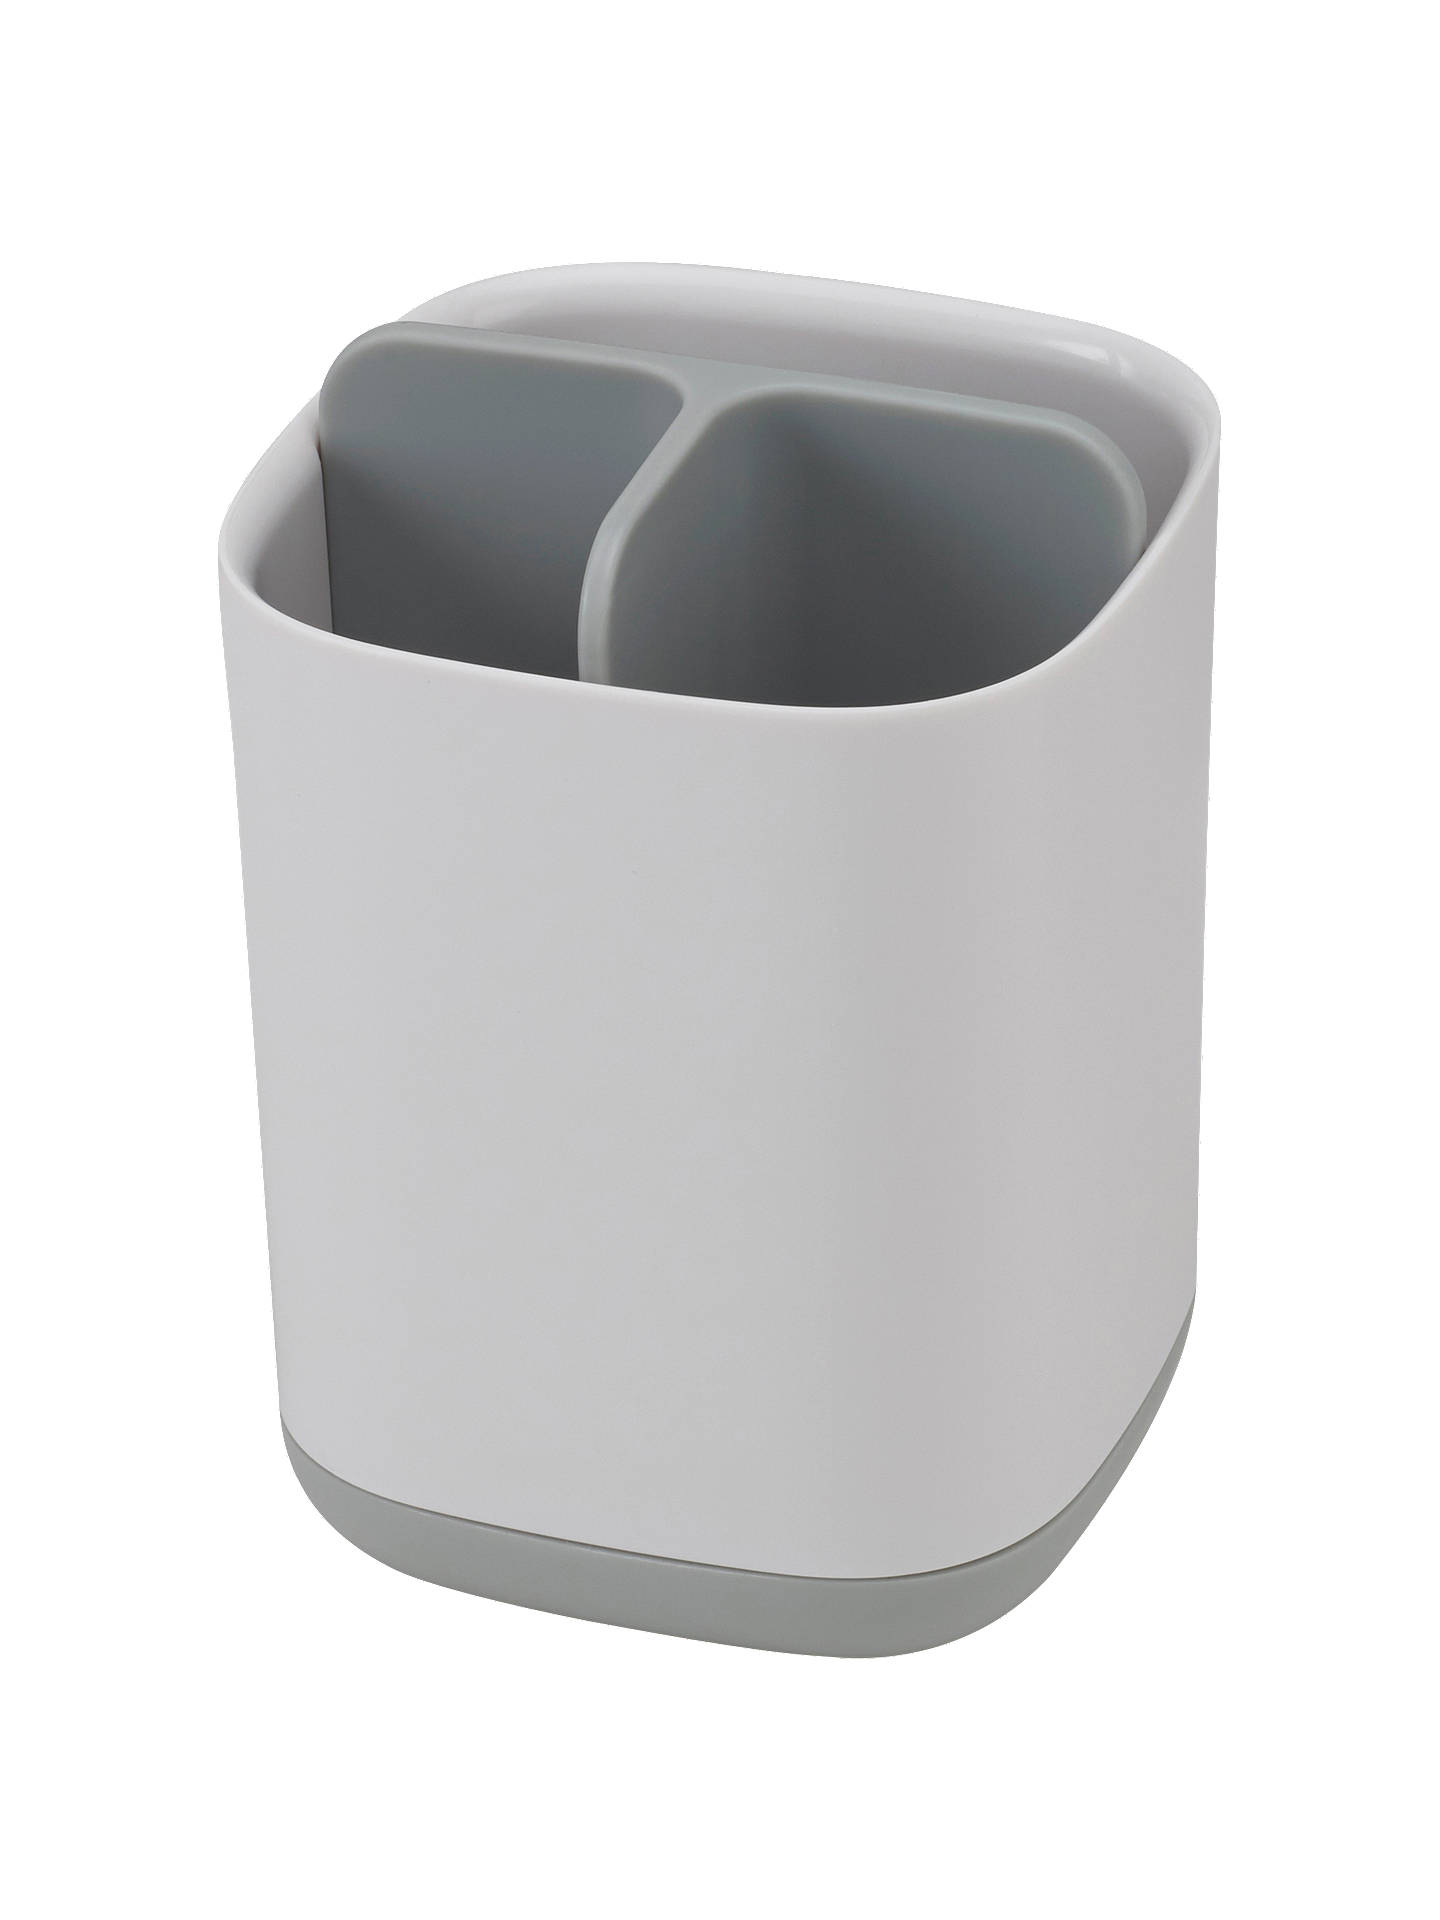 joseph-joseph-easystore-toothbrush-holder,-grey by joseph-joseph-easystore